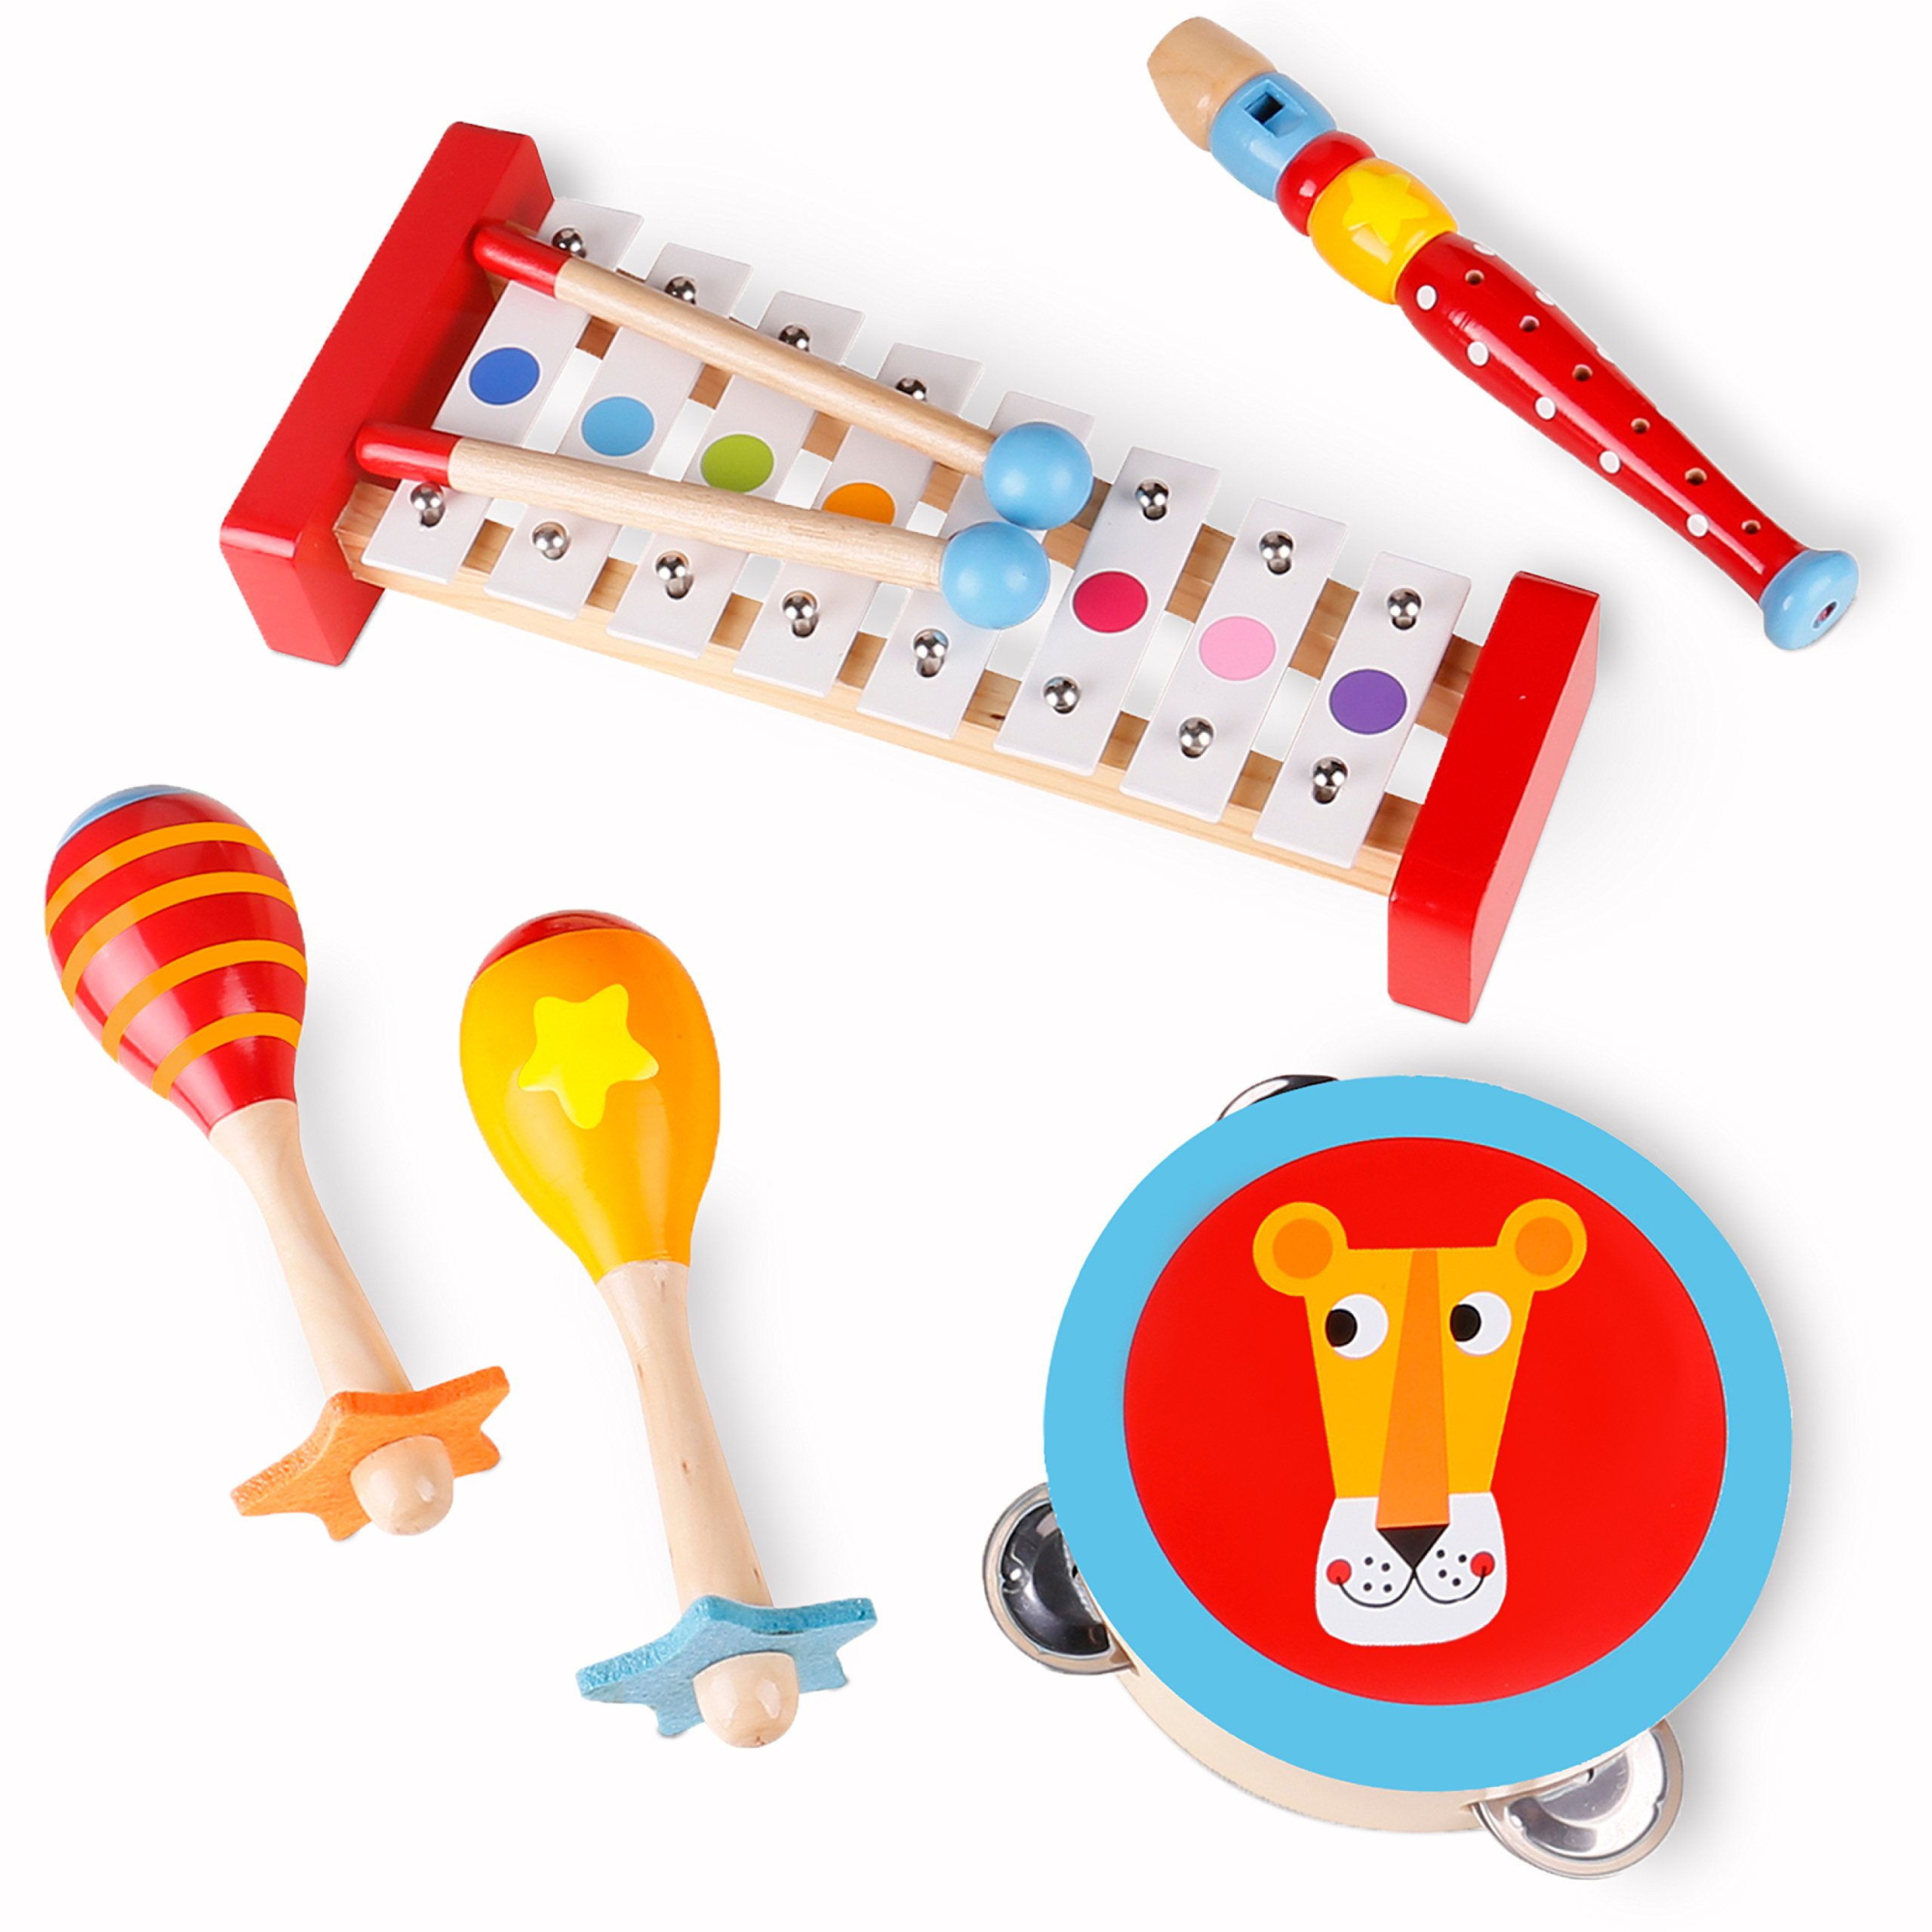 """USA Toyz Toddler Toys Wooden Musical Instruments - """"Band in a Box"""" 4 Piece Wooden Musical Toys for Kids"""